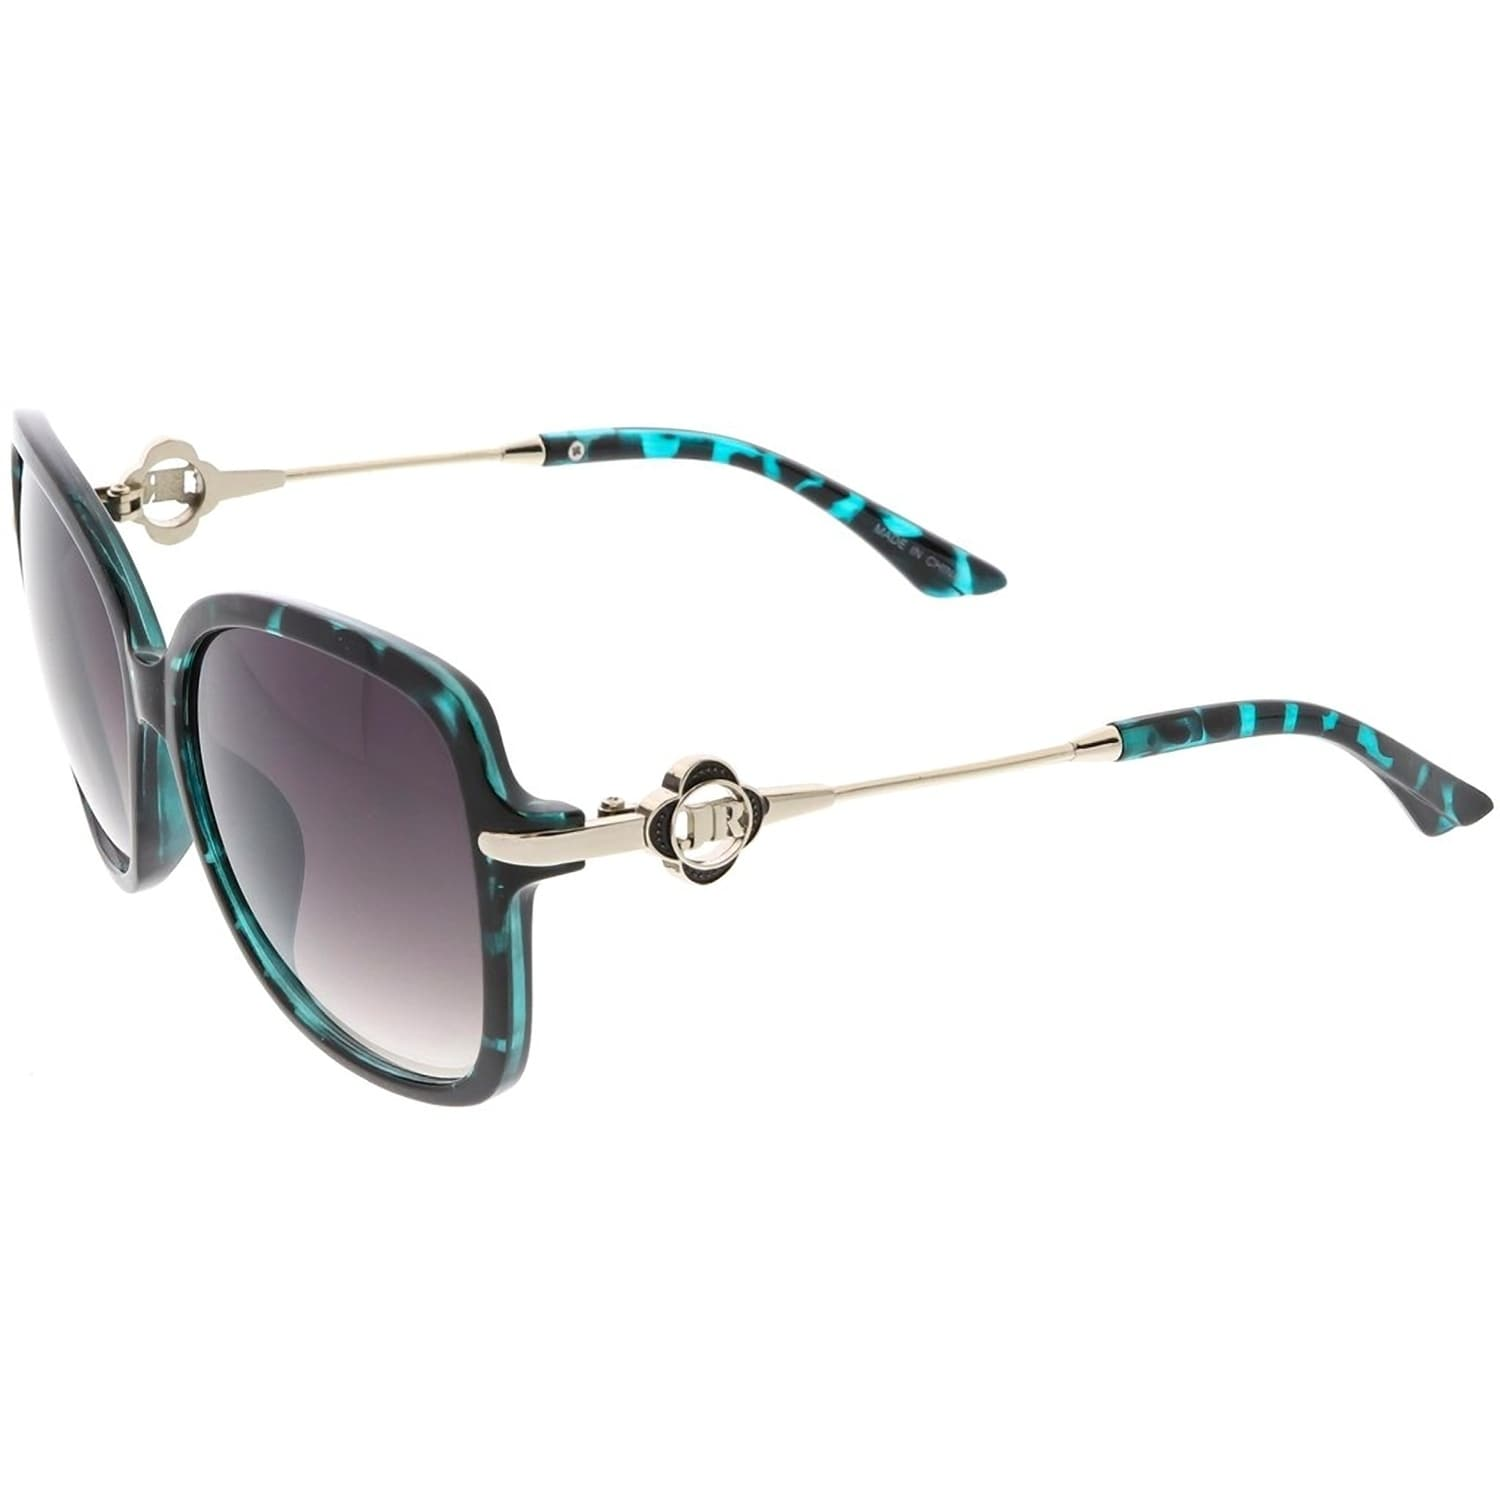 1b67c1fc2ab Shop Jolie Rose Oversize Women Butterfly Frame Sunglasses Model 144 - Free  Shipping On Orders Over  45 - Overstock - 22673076